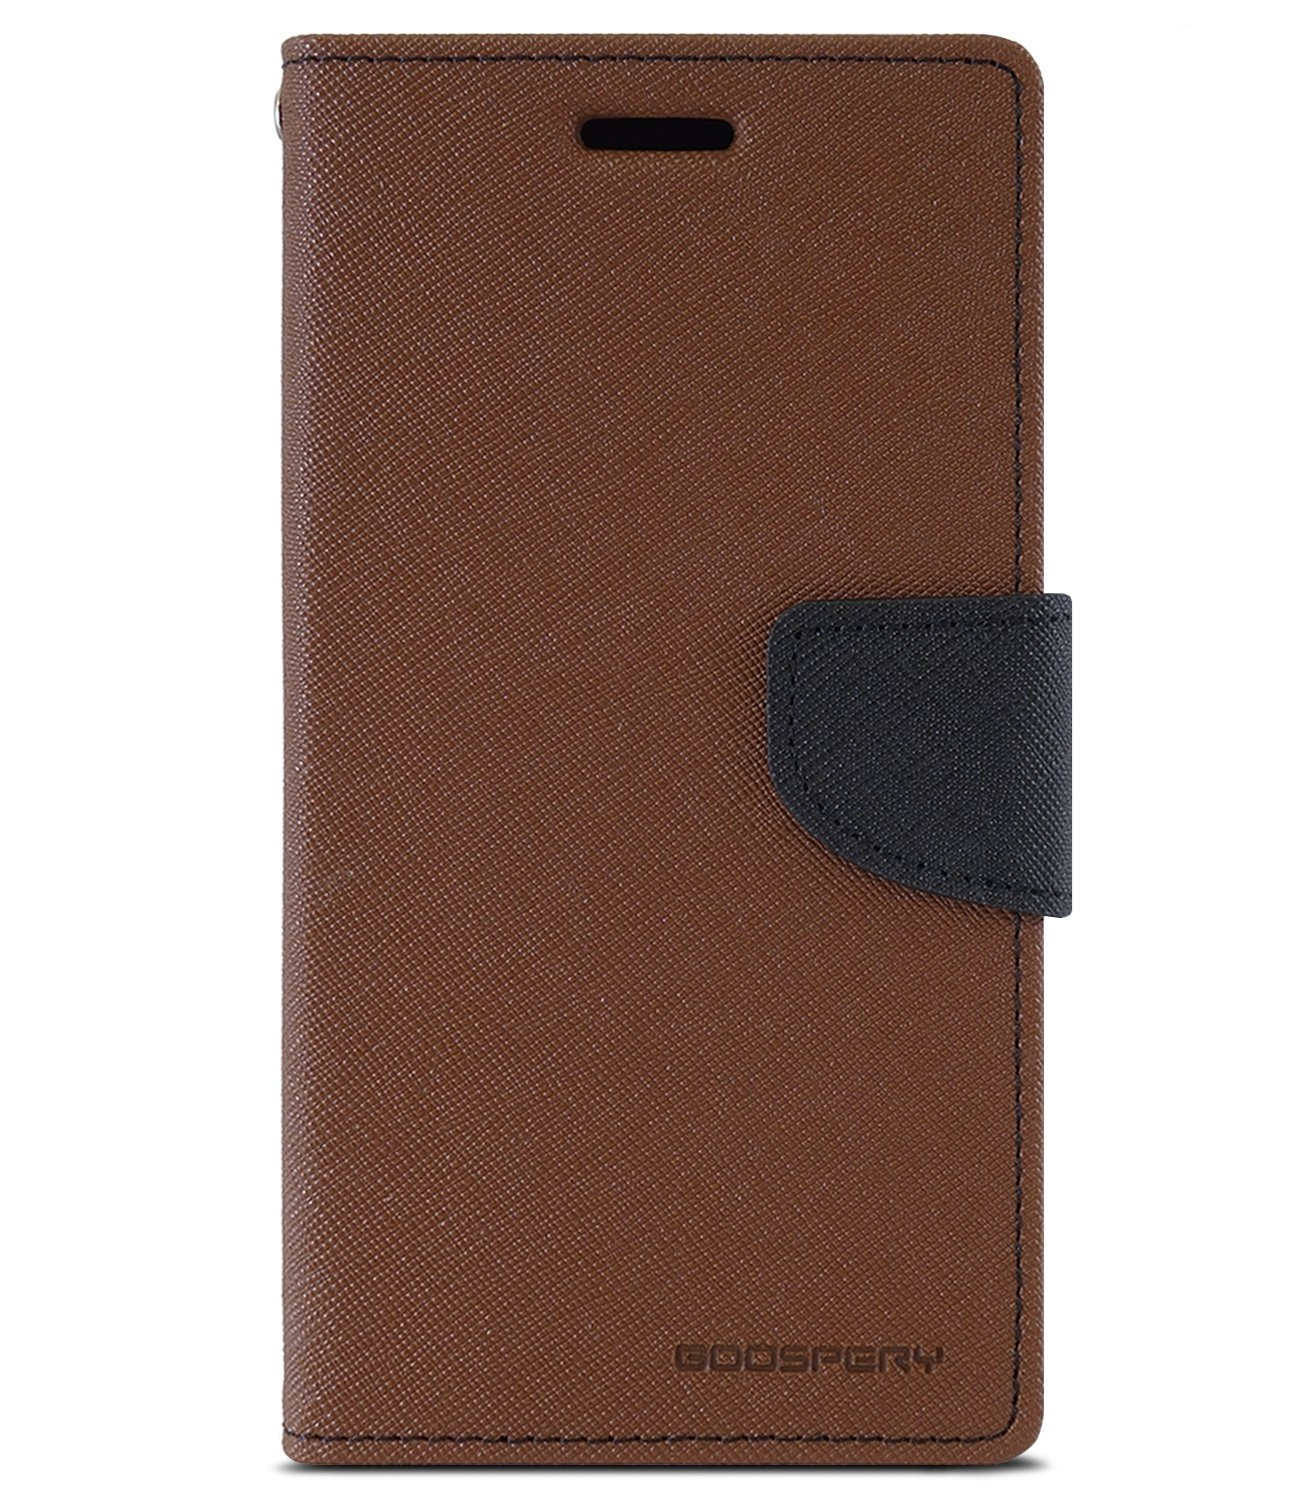 Galaxy S5 Active Case Drop Protection Goospery Fancy Samsung S9 Diary Black Brown Wallet Pu Saffiano Leather Id Card Slots Cash Slot Stand Flip